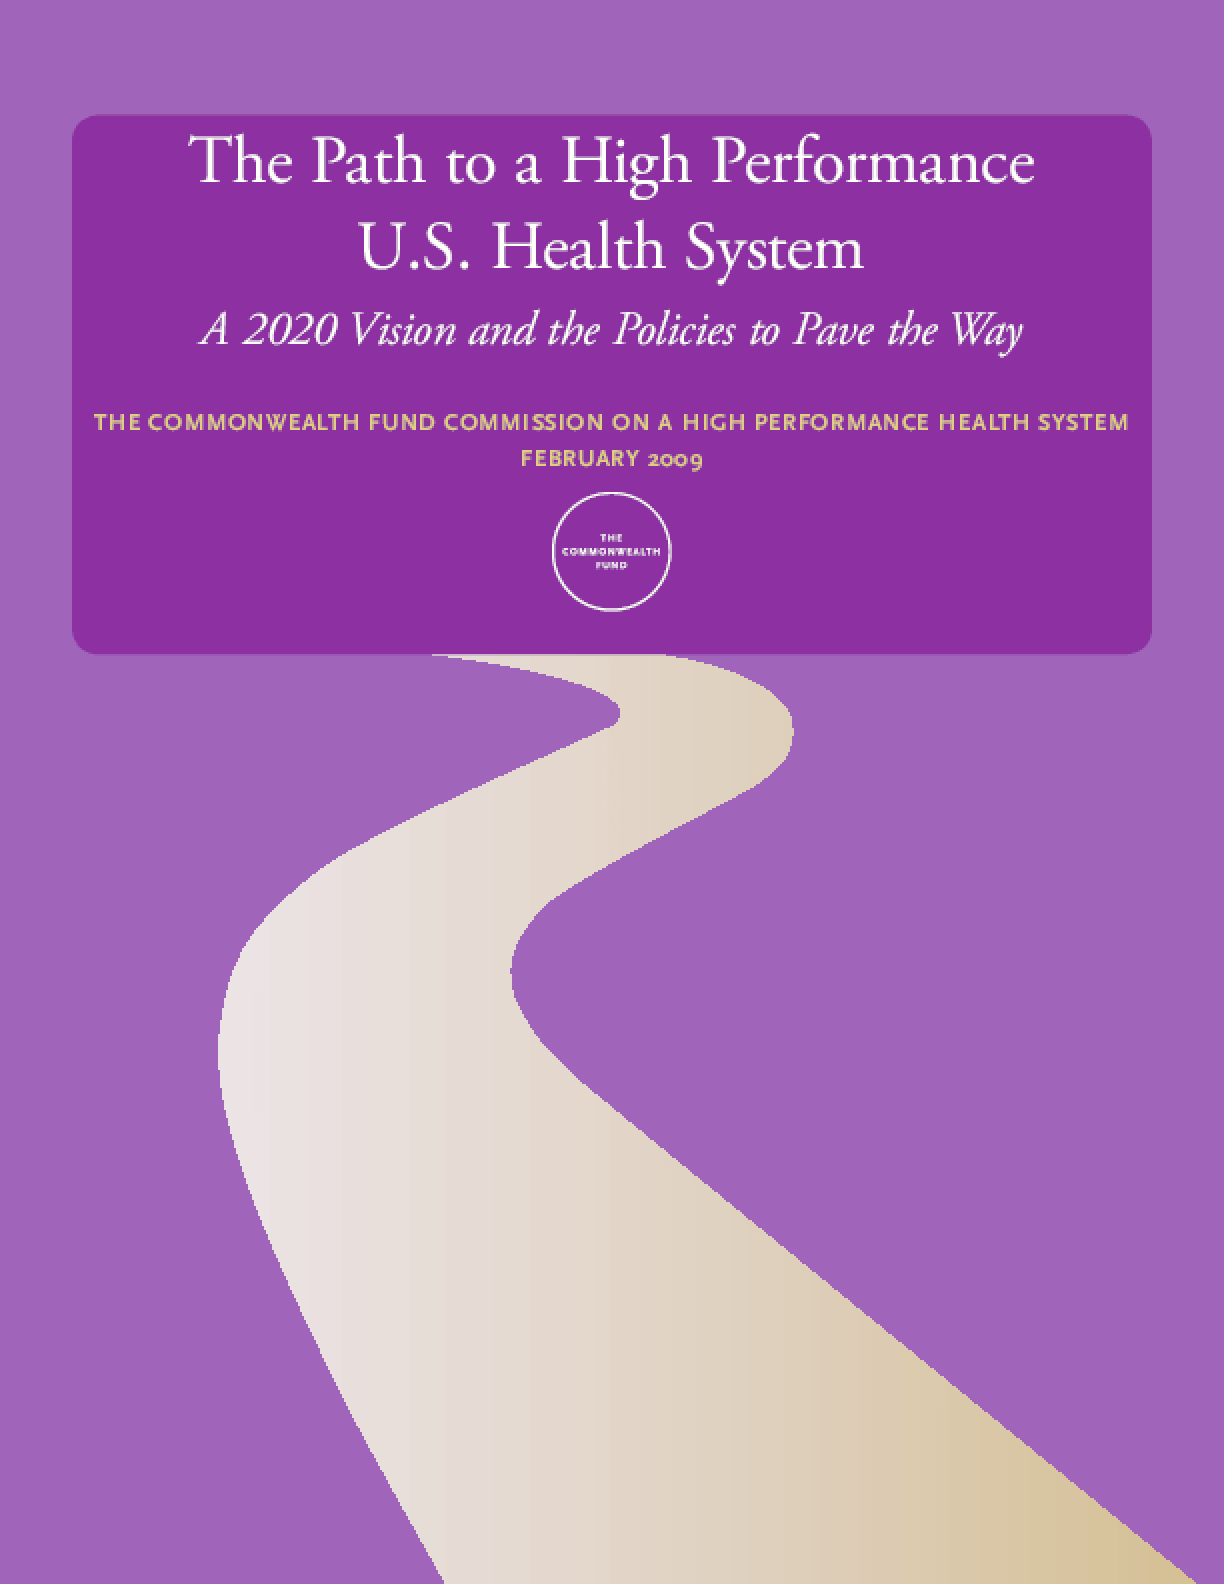 The Path to a High Performance U.S. Health System: A 2020 Vision and the Policies to Pave the Way